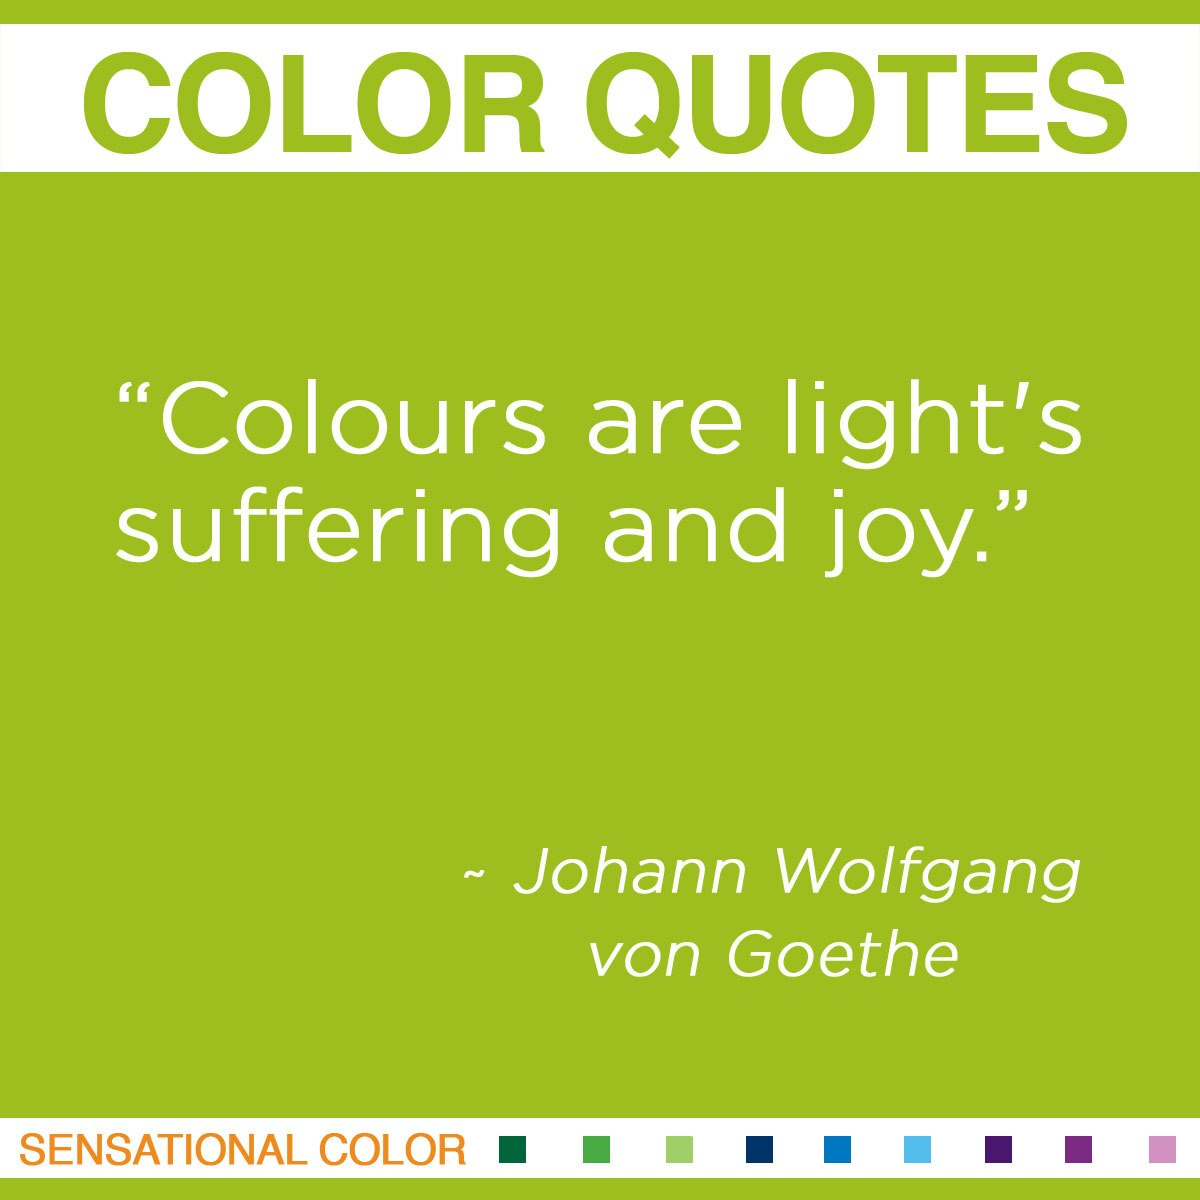 von Goethe Quote About Color